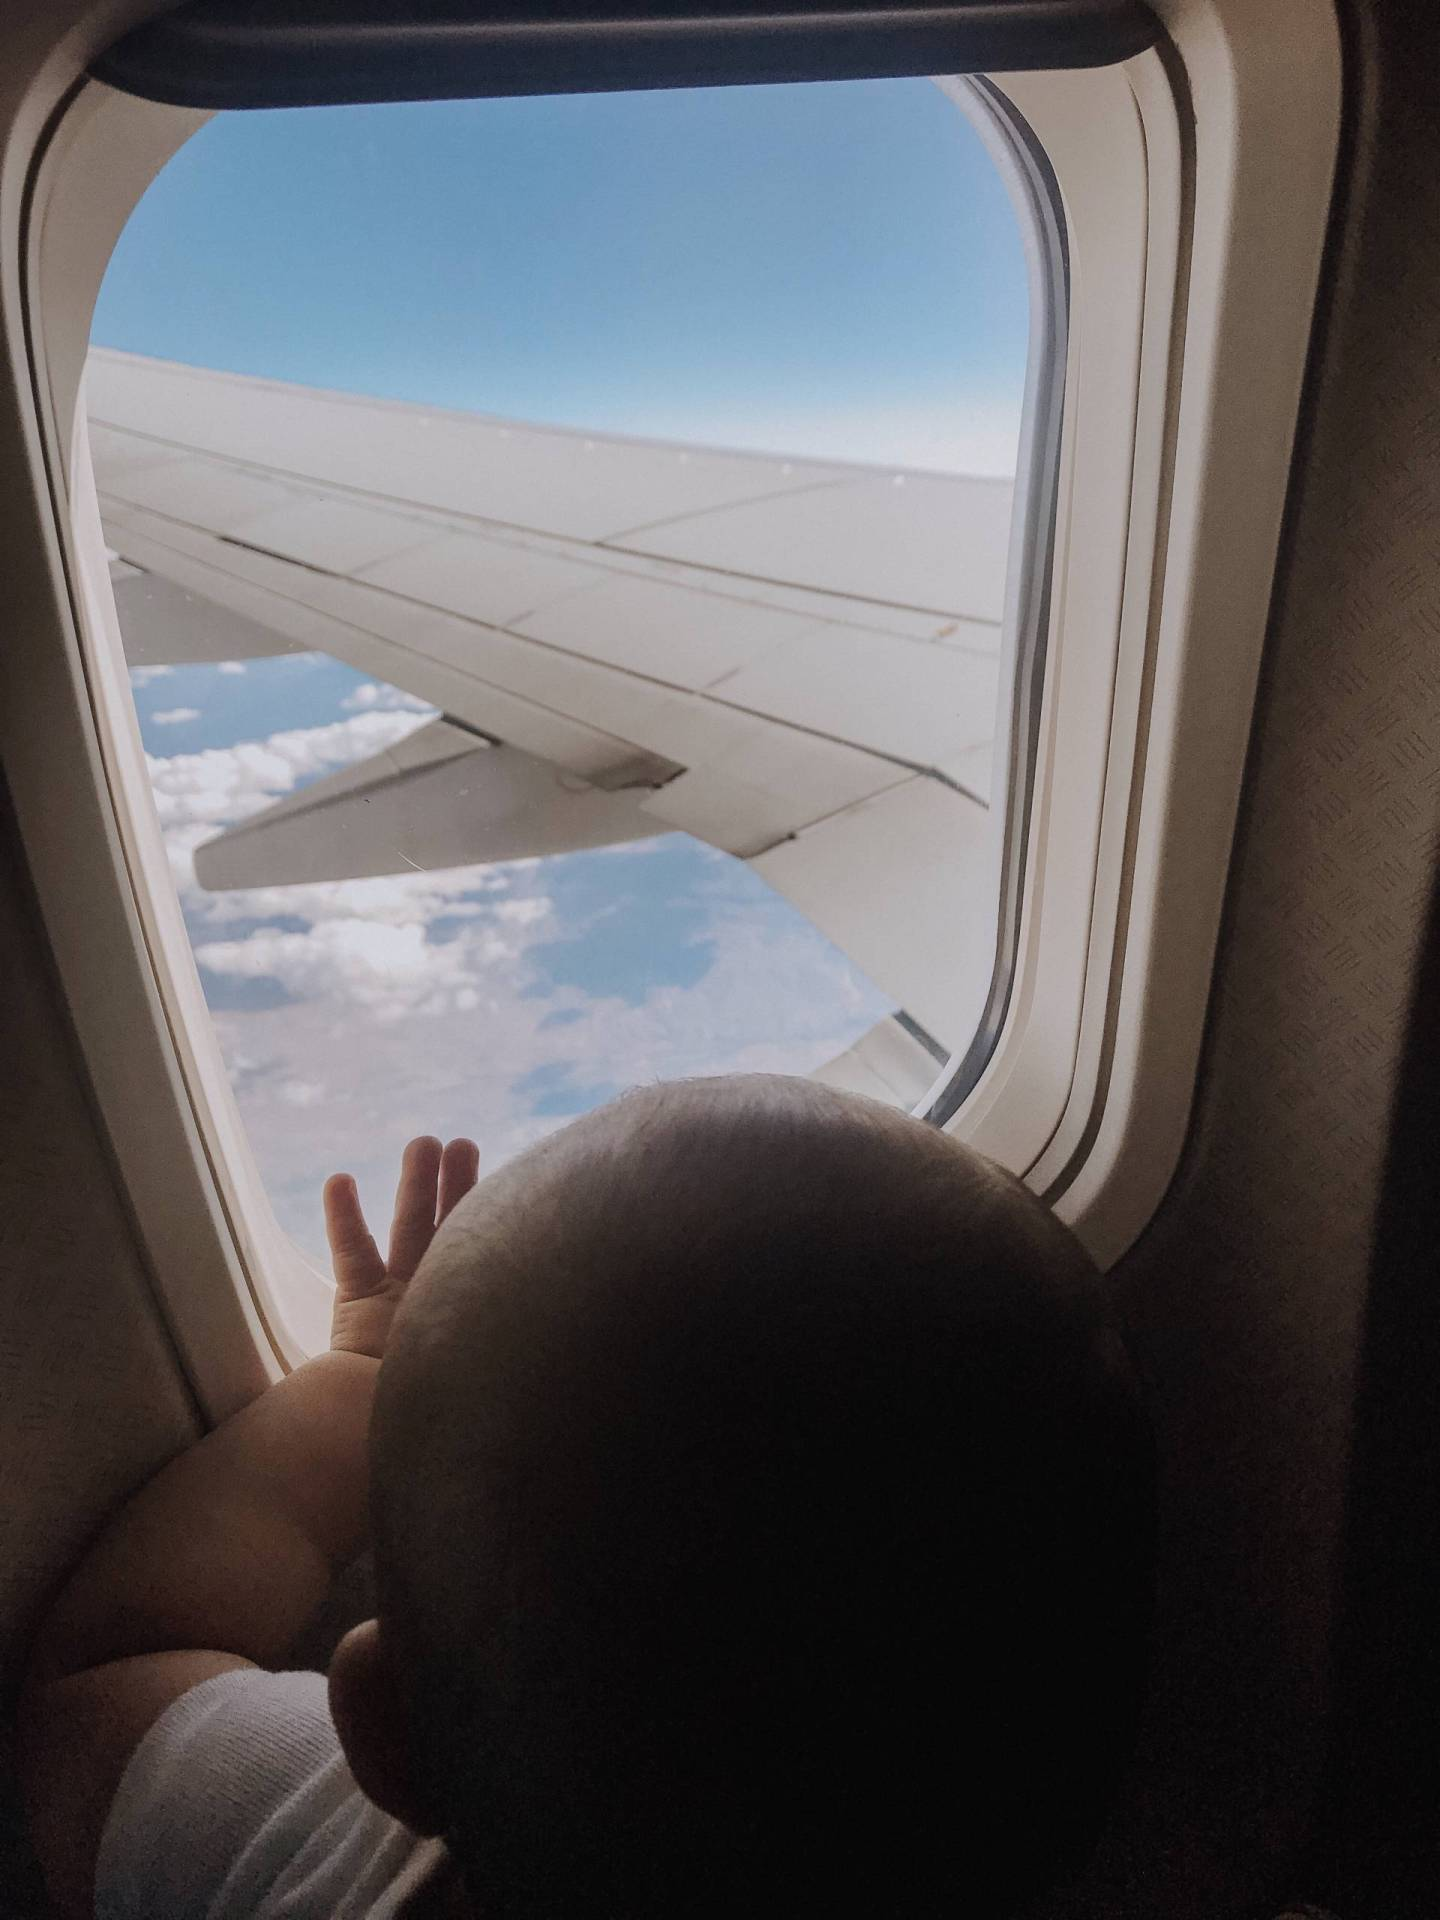 Answering Your Questions About Traveling with a Baby